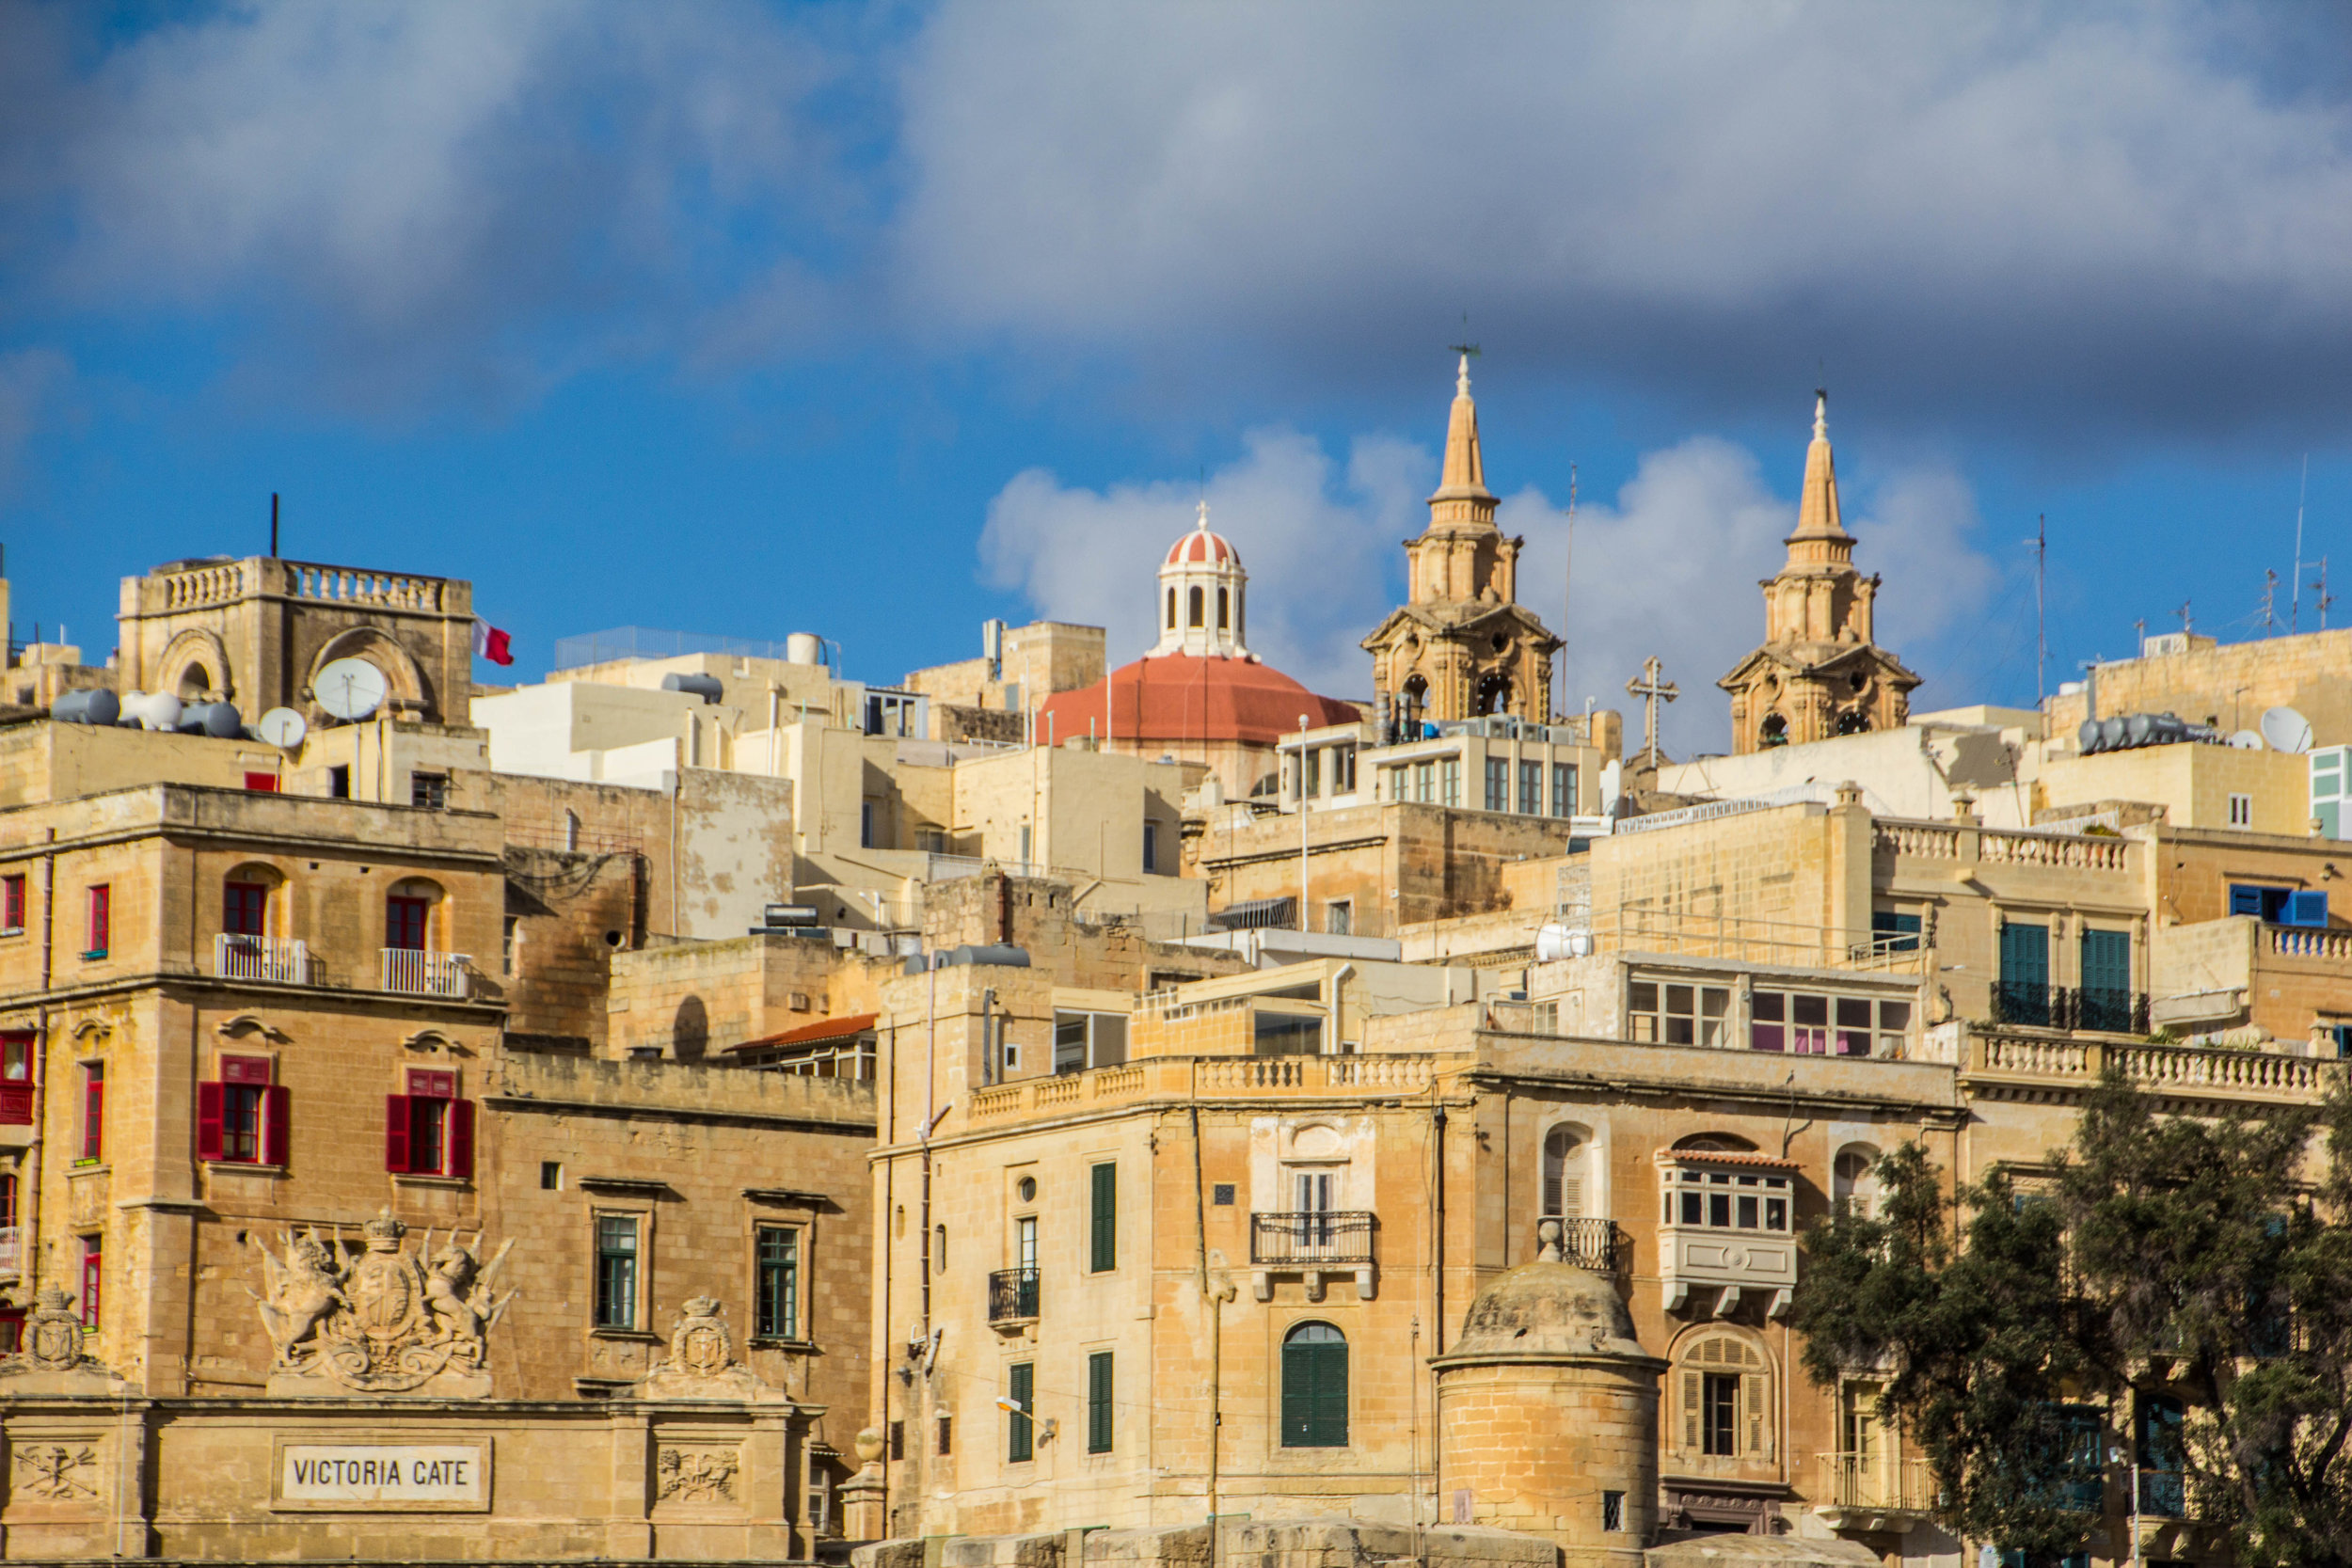 valletta-malta-clouds-rain-streets-photography-7.jpg